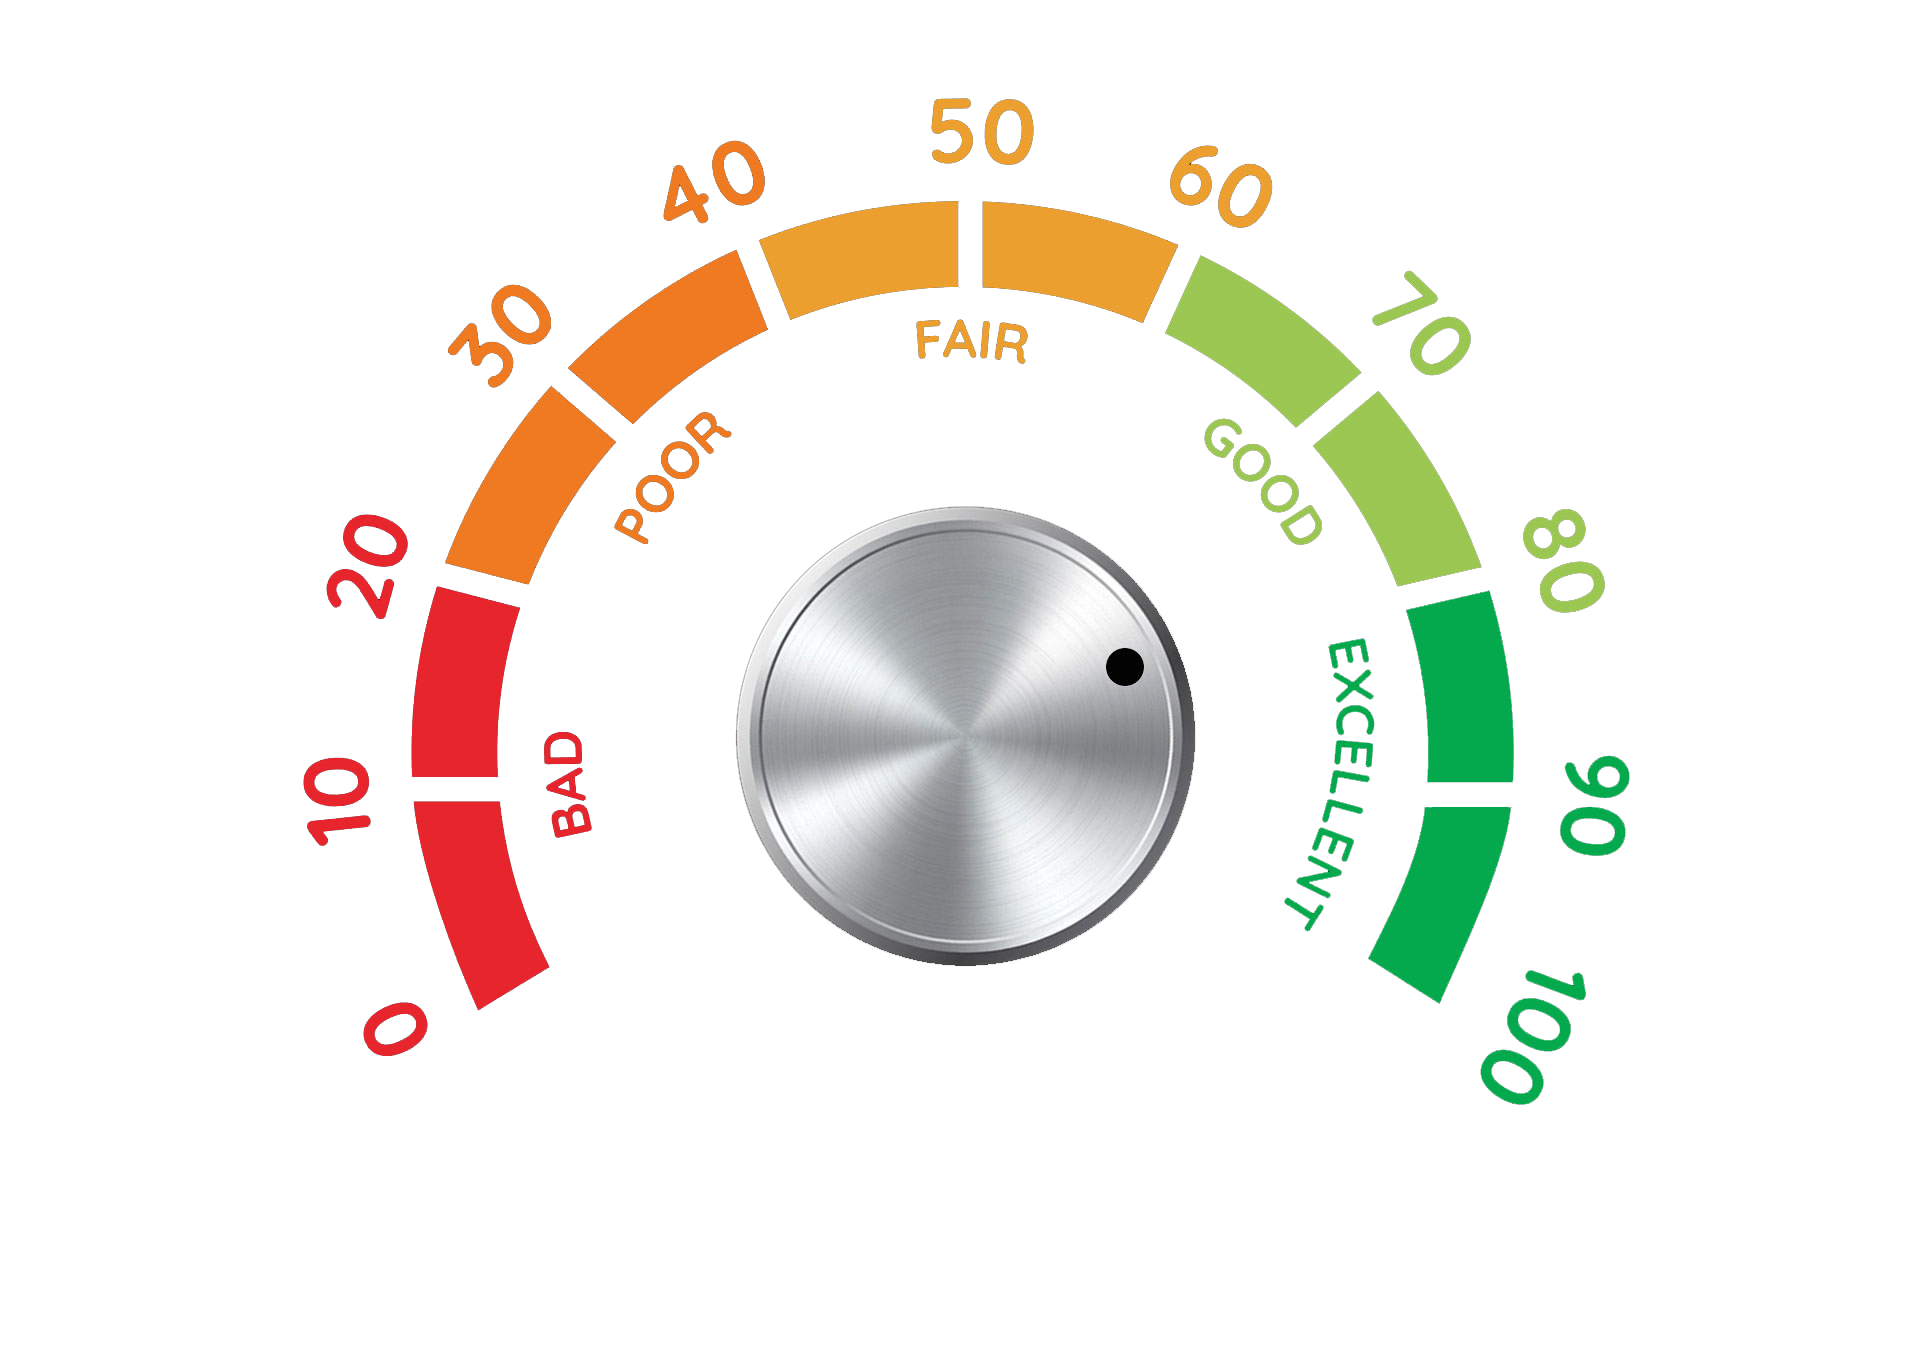 Image of dial with viewer score